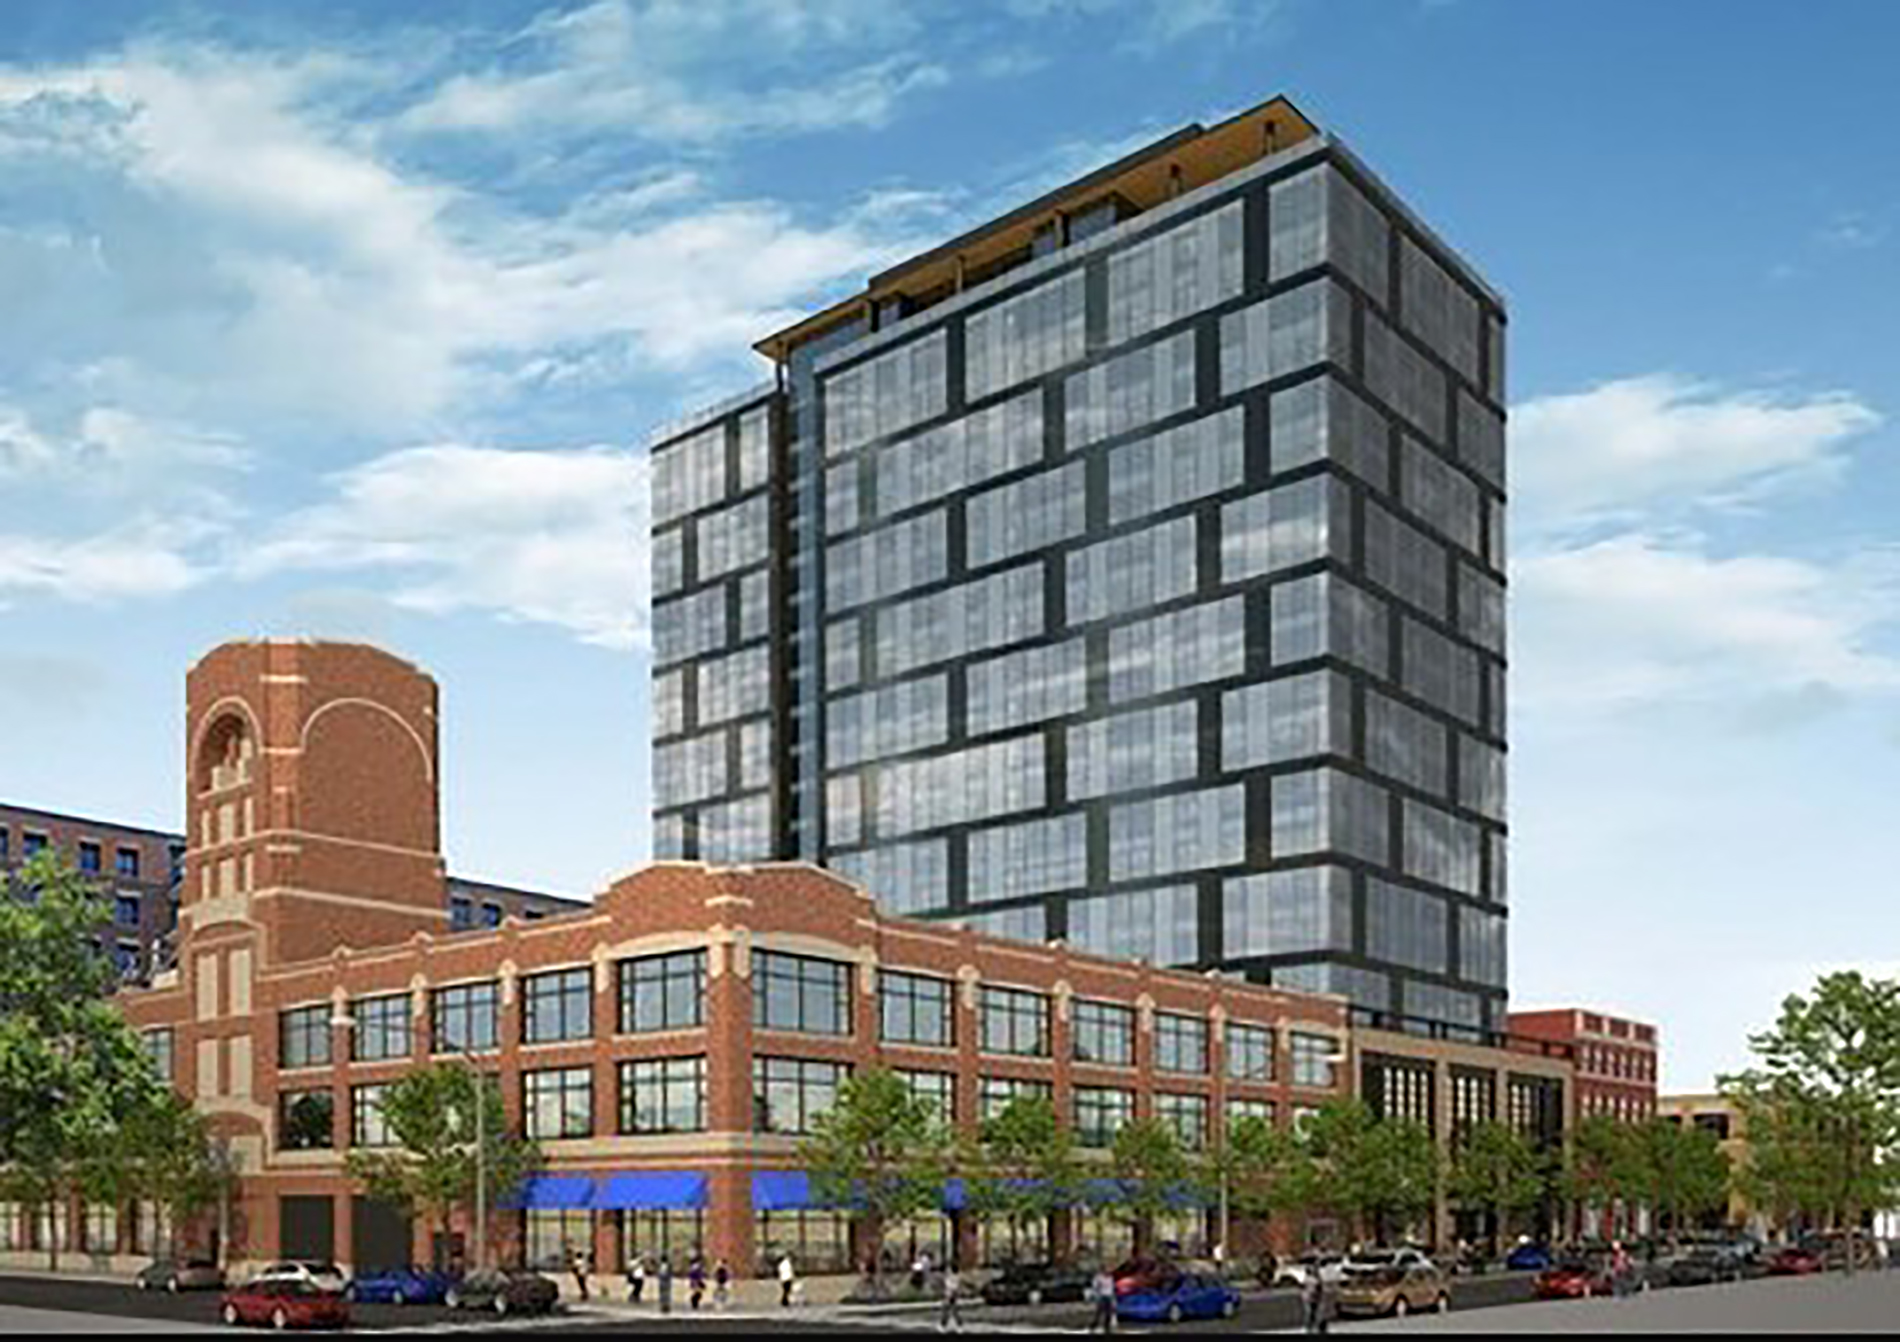 A rendering of the 19-story building proposed for 1217 W. Washington Blvd.